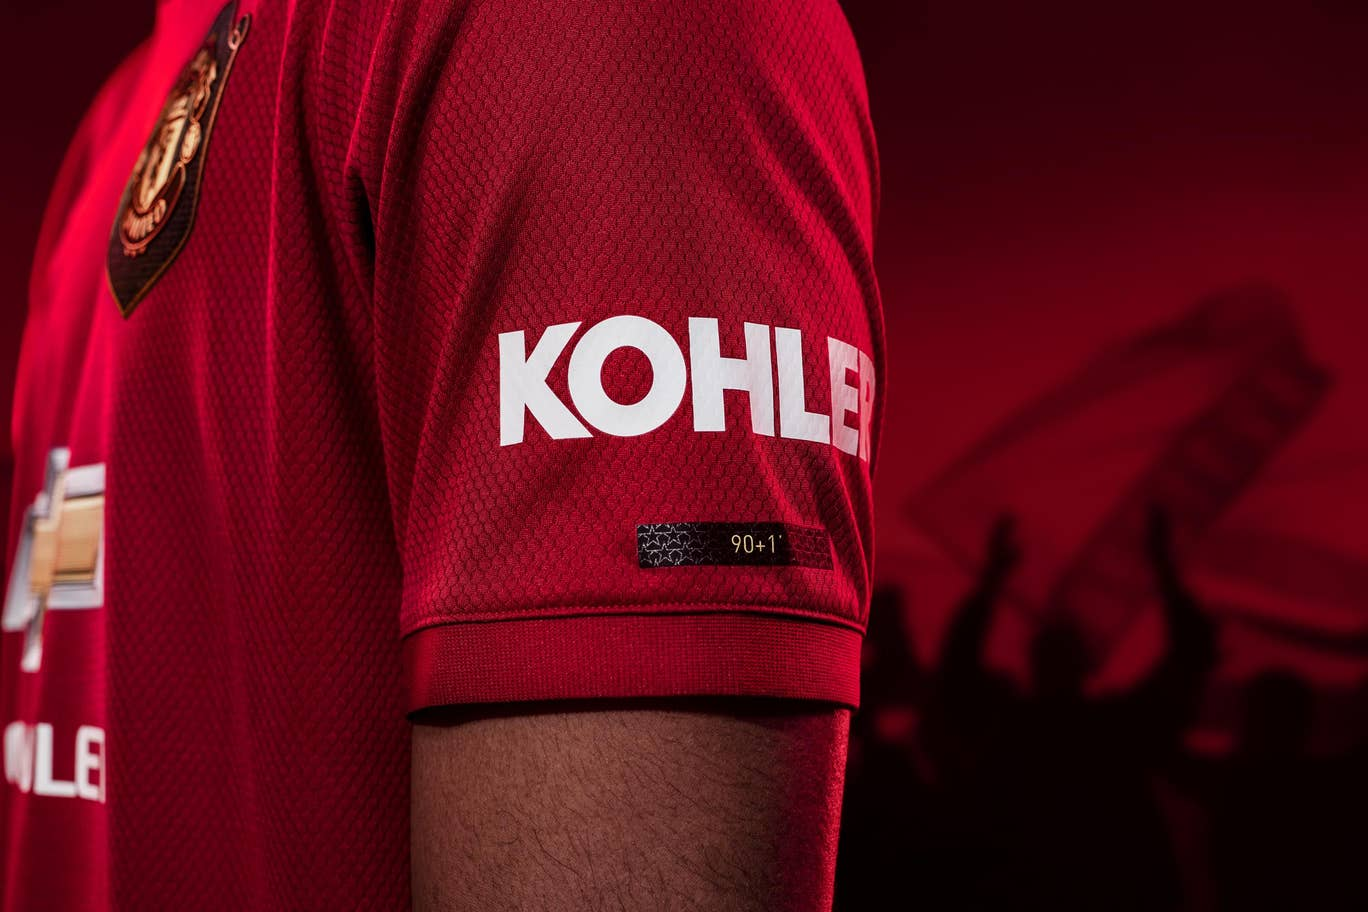 Home Kit Manchester United Musim Depan Peringati Treble 20